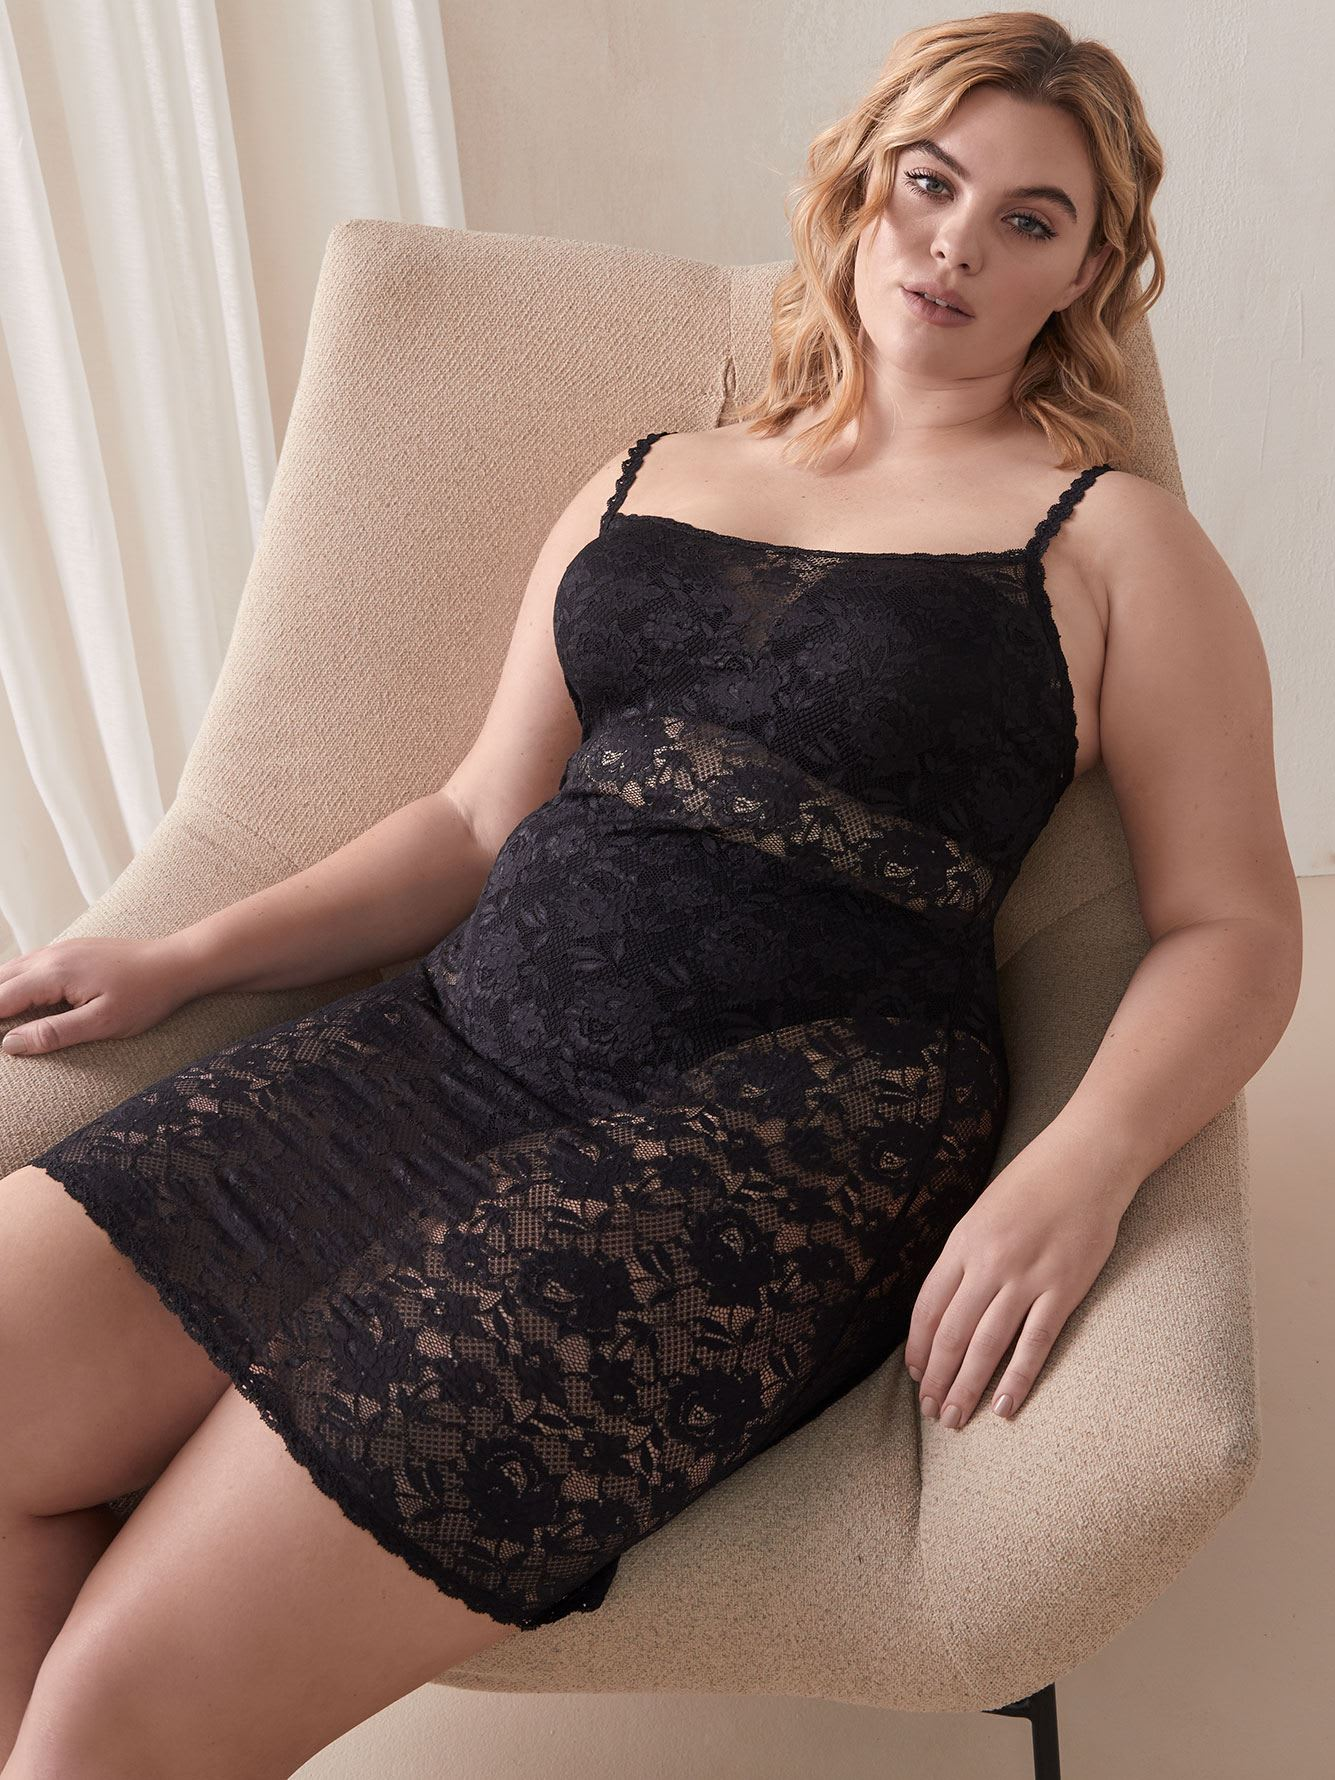 Foxie Never Say Never Lace Babydoll - Cosabella